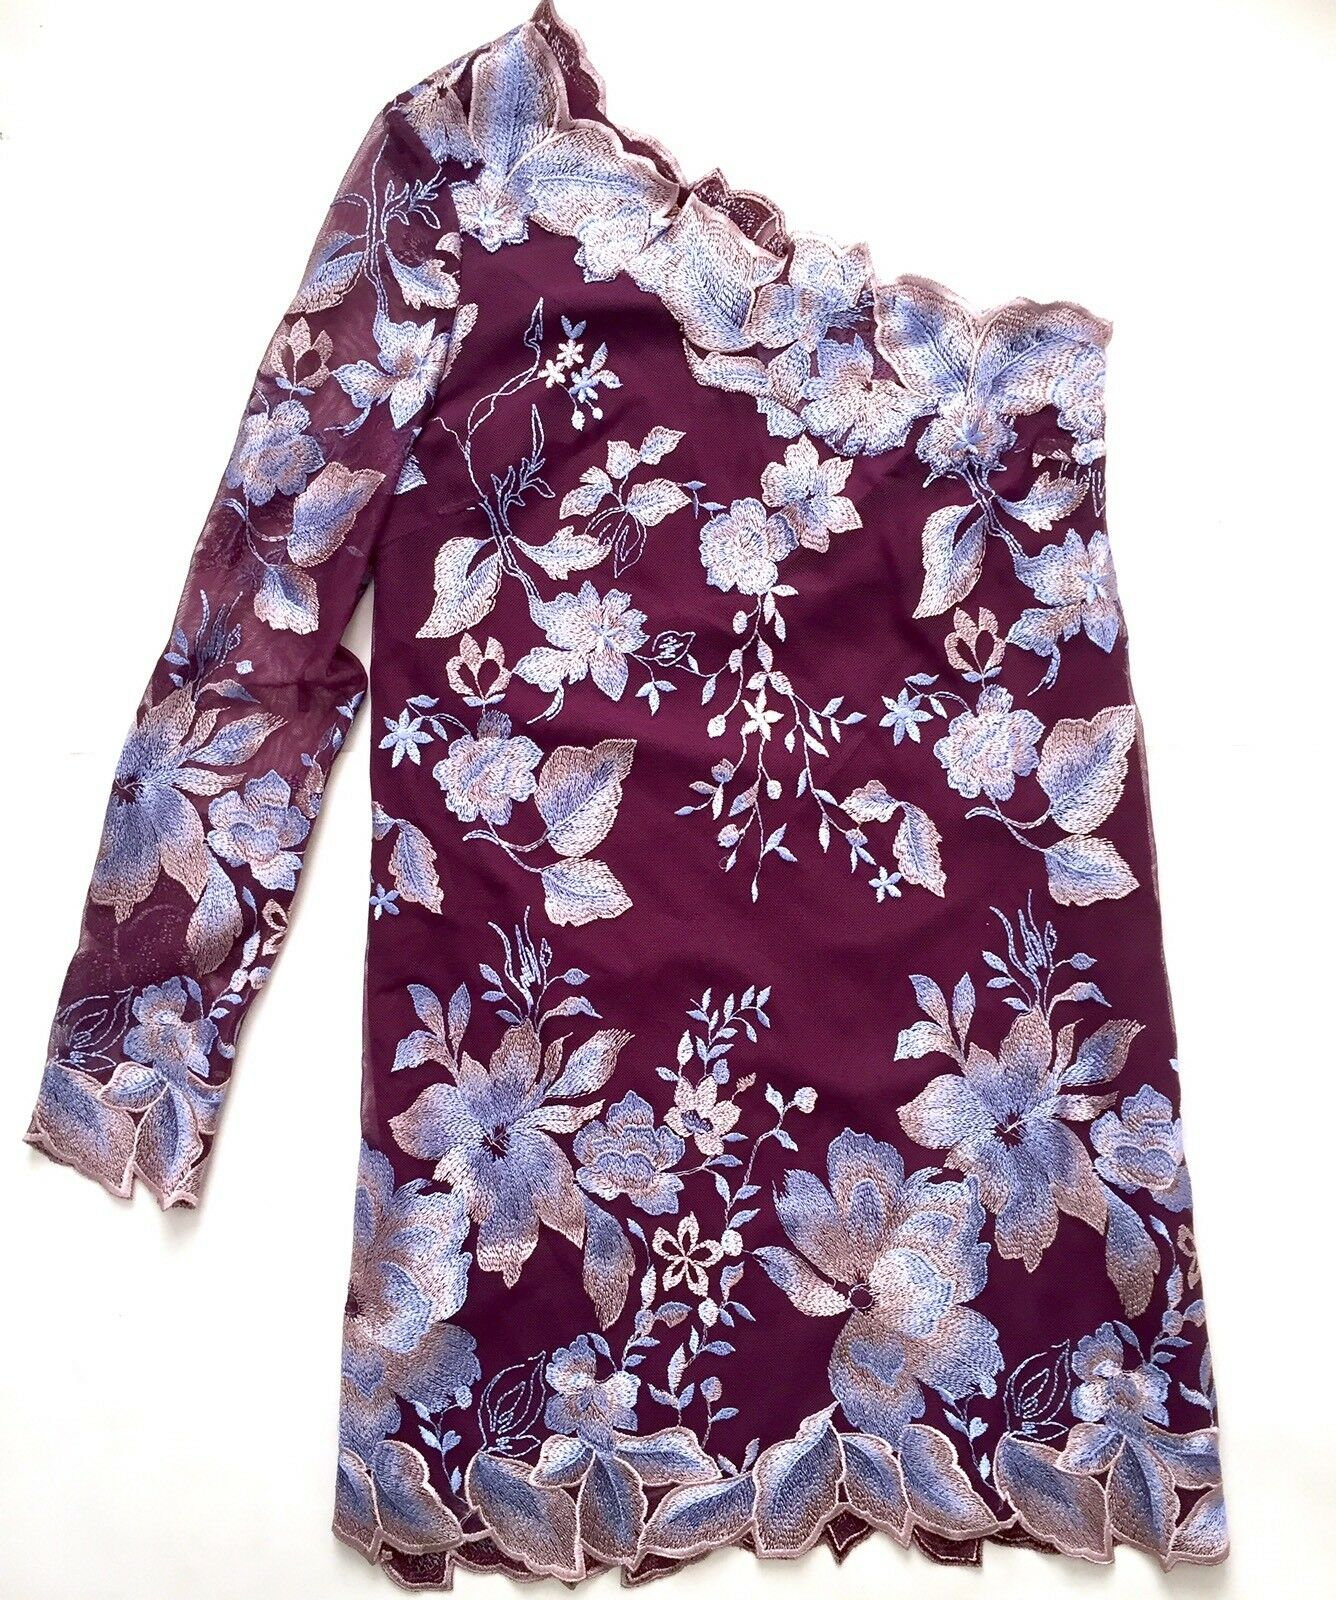 New Free People Wine lila One Shoulder Floral Dress Embroiderot Boho XS Sz 2